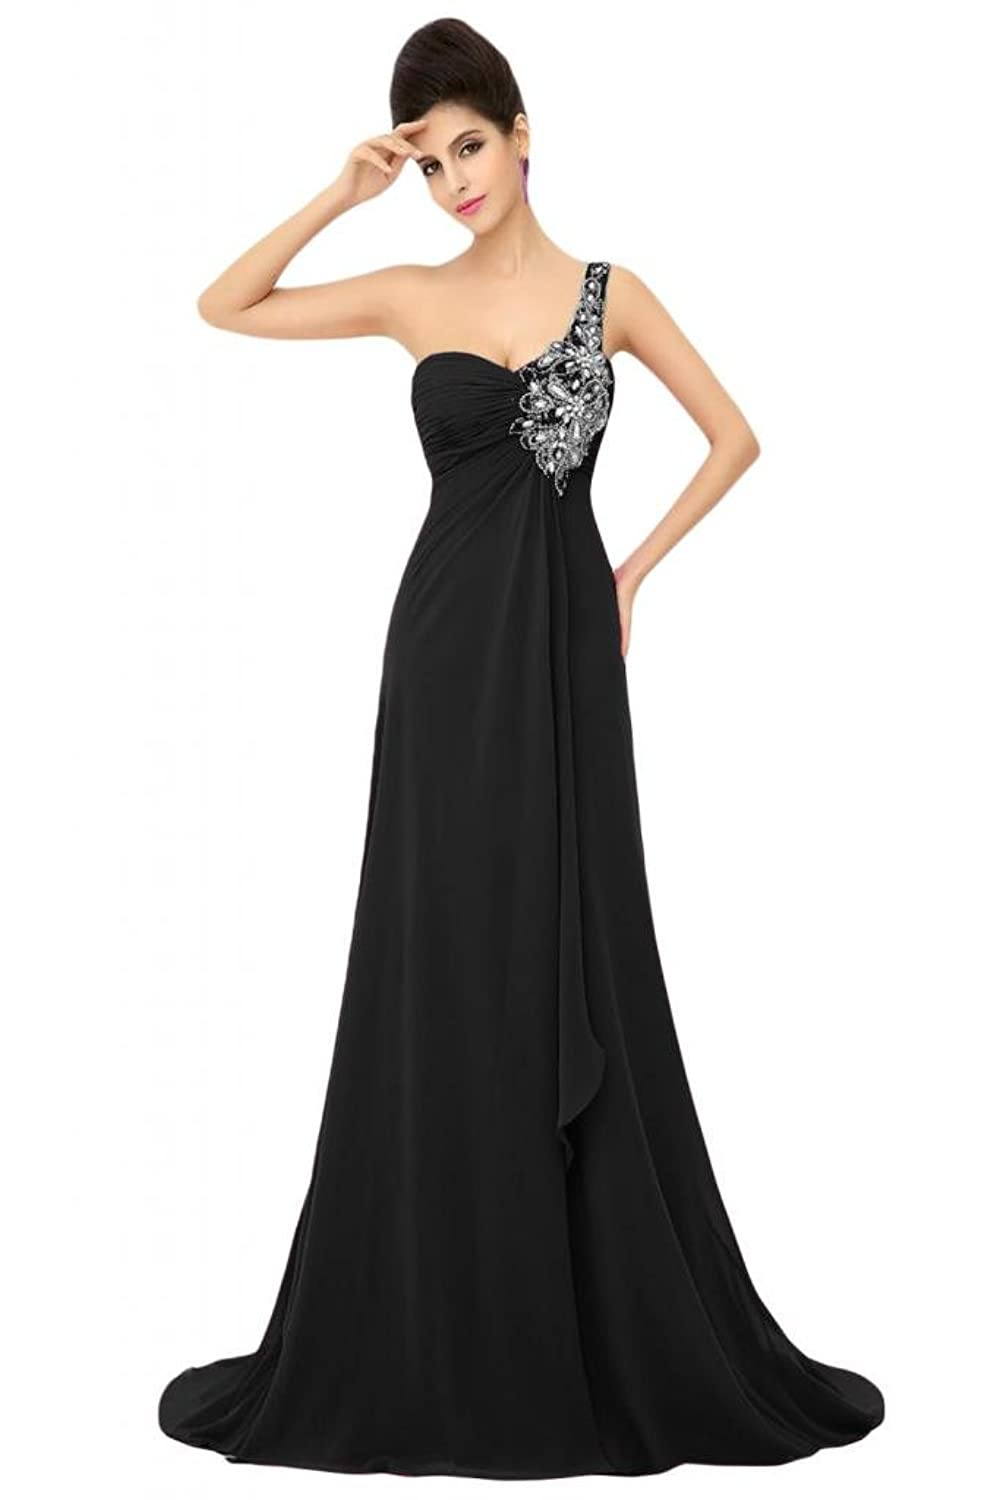 Sunvary Formal Evening Prom Dresses Chiffon A-line One Shoulder Mother Of Bride Gowns